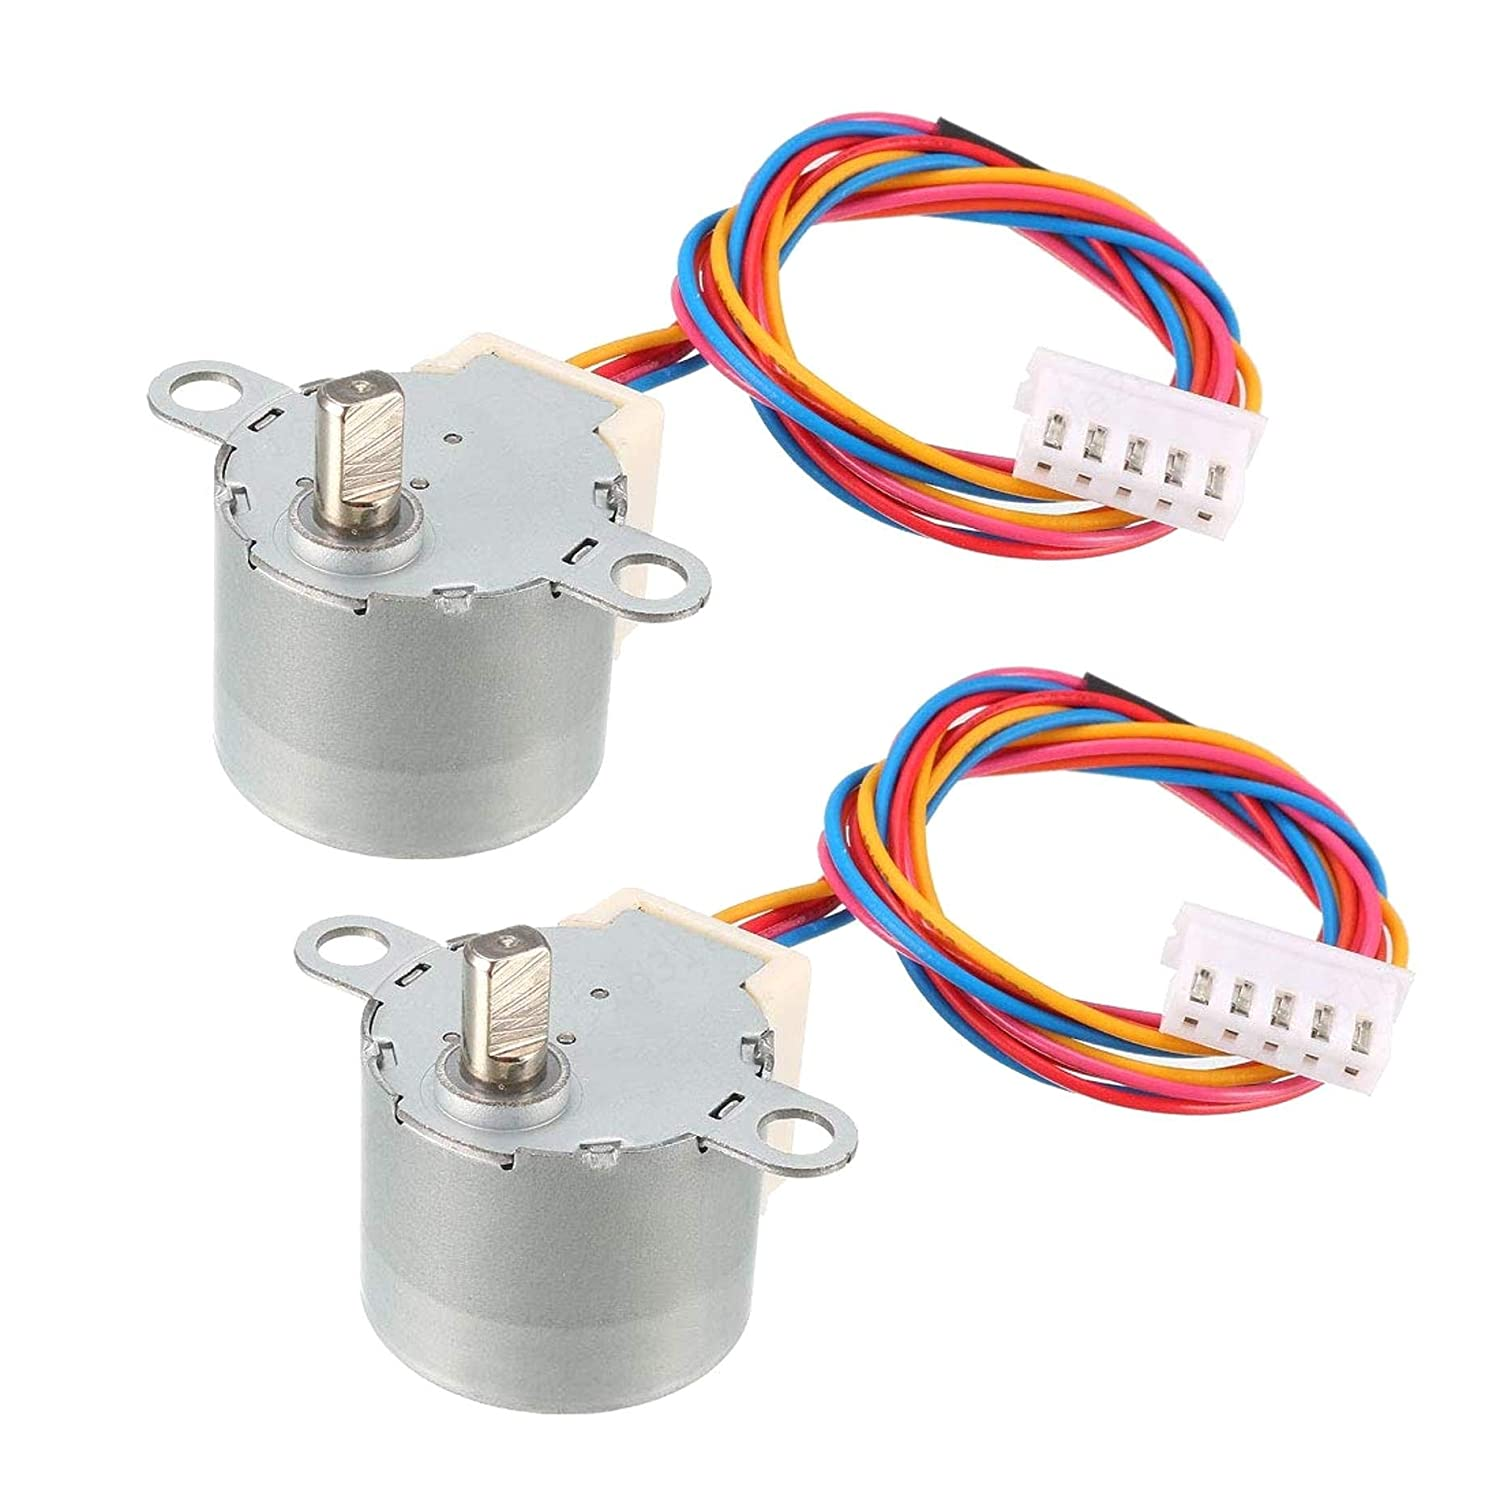 COMEYOU 2 Piezas 24BYJ48 DC 12V Reducci/ón Motor Paso a Paso Micro Reductor 4-Phase 5-Wire Stepping Motor